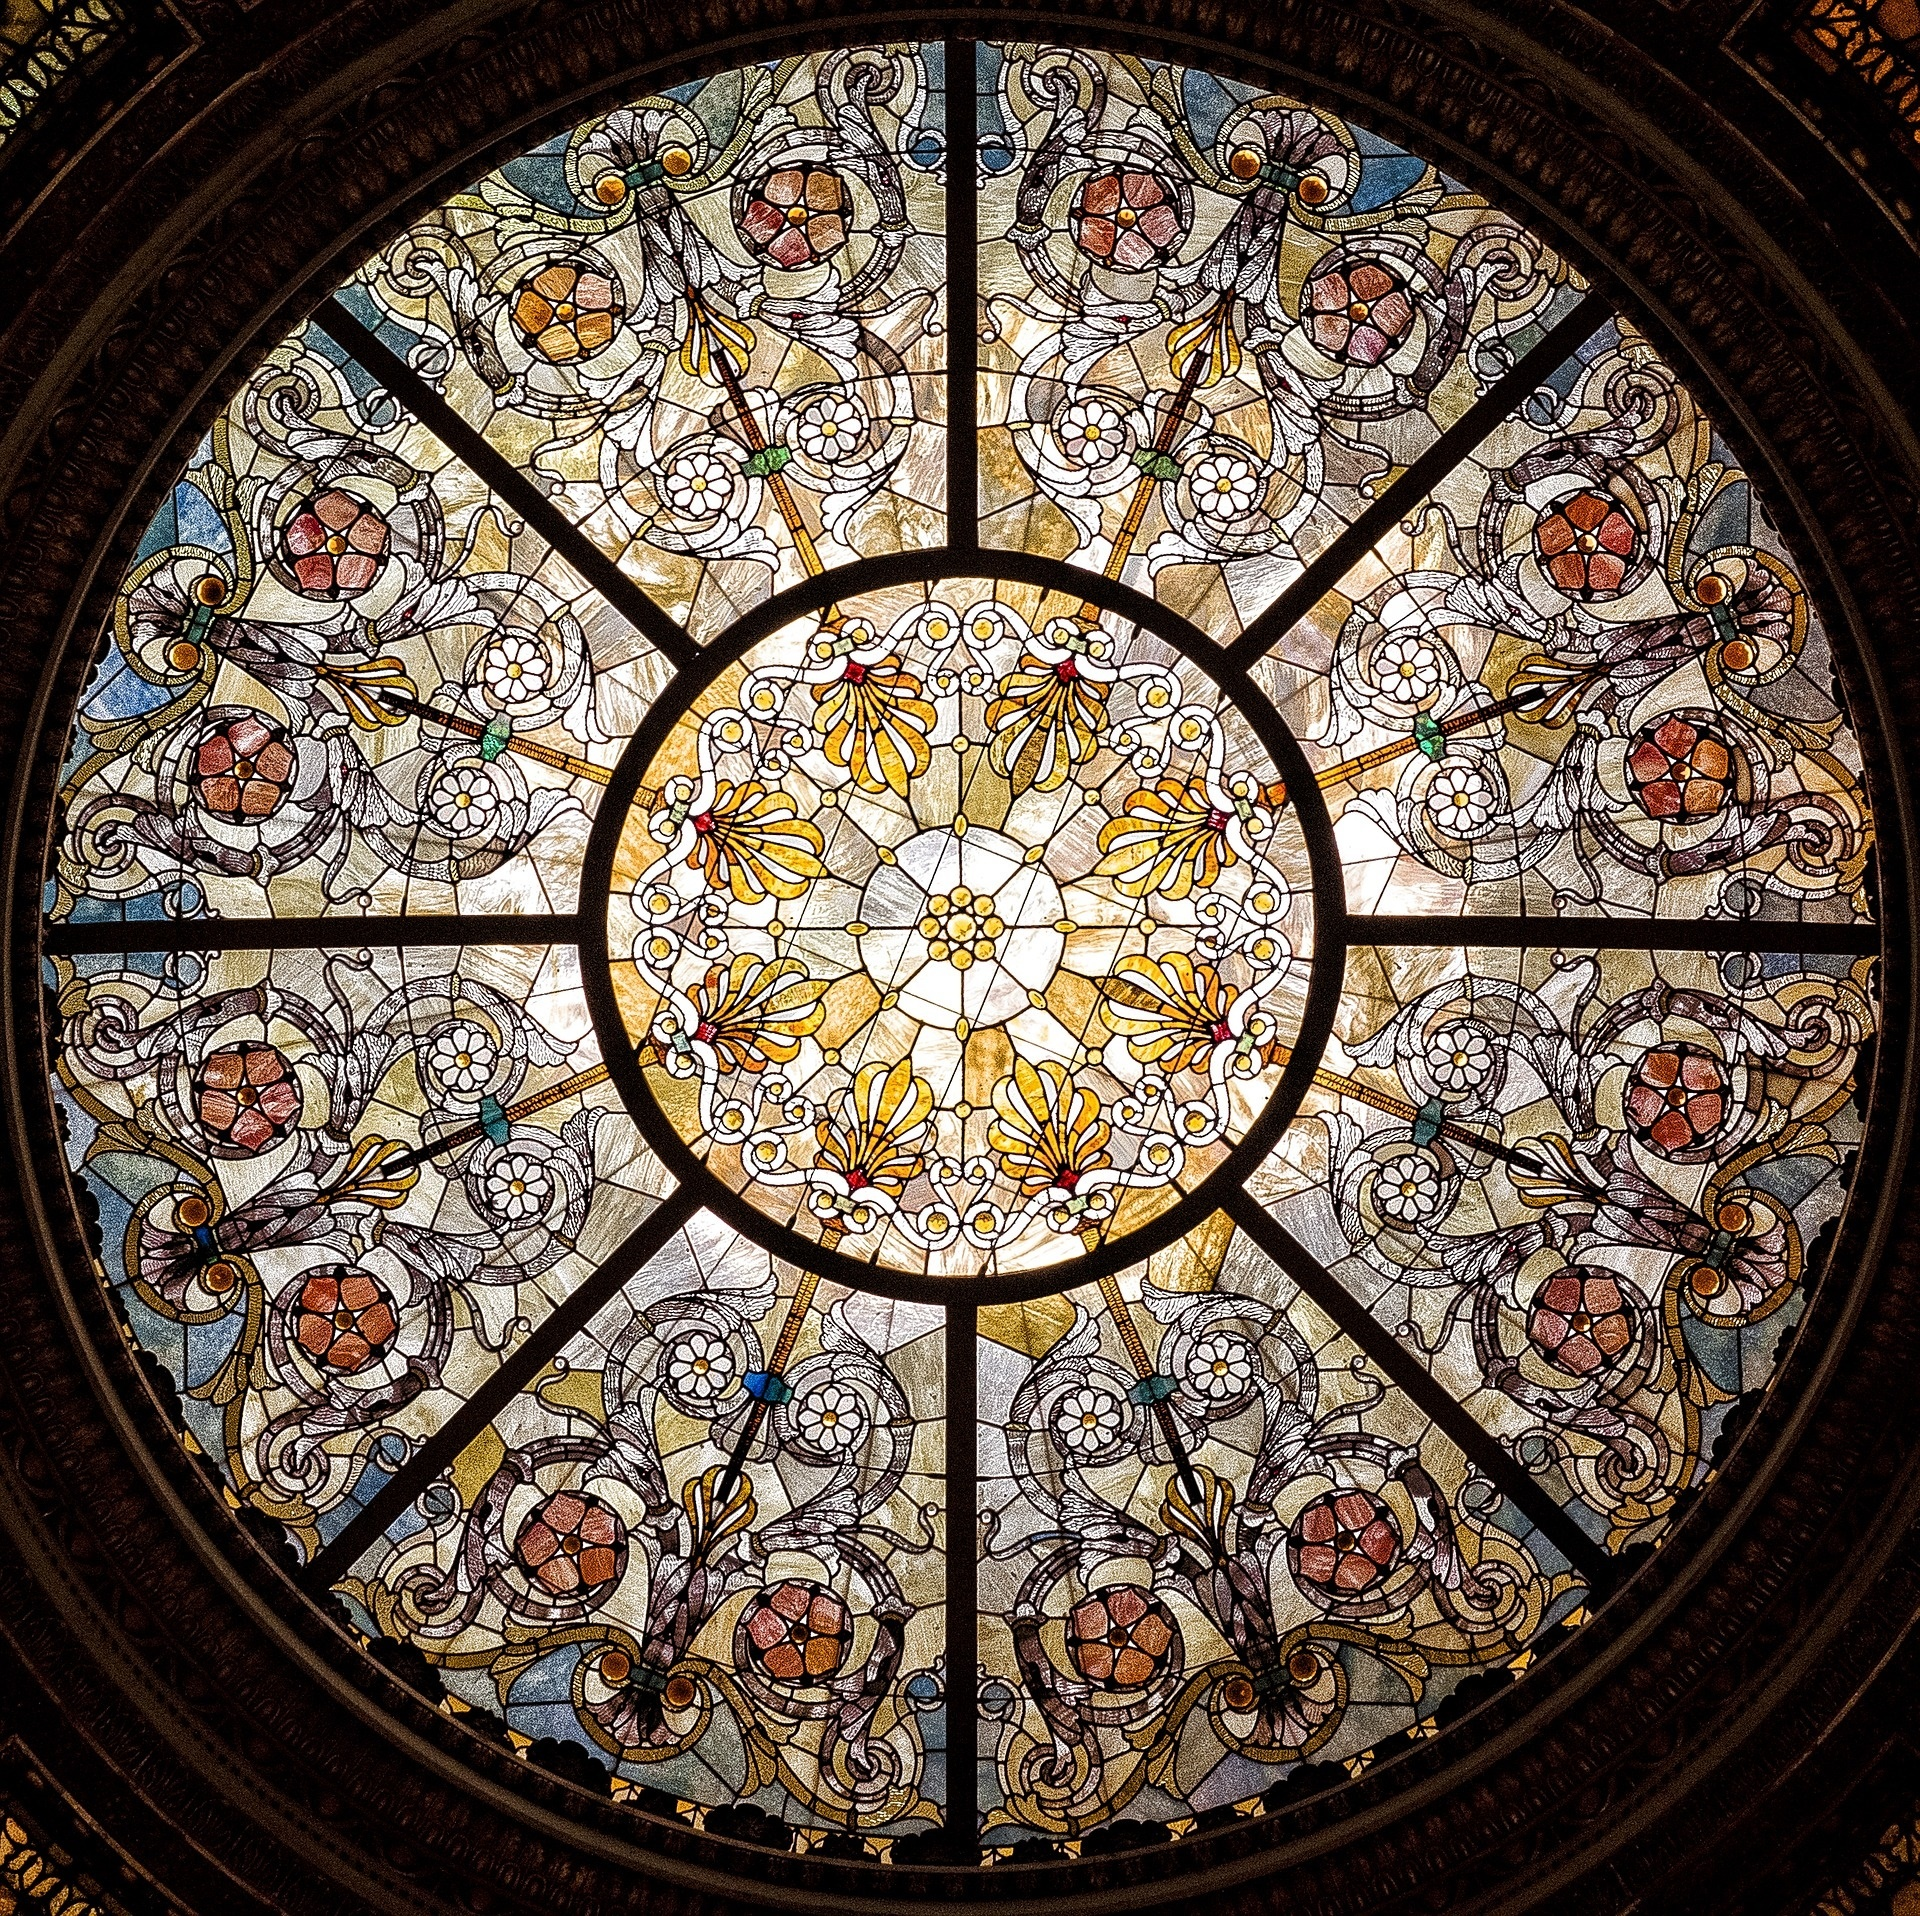 Ceiling Wallpaper 3d Stained Glass Free Stock Photo Public Domain Pictures